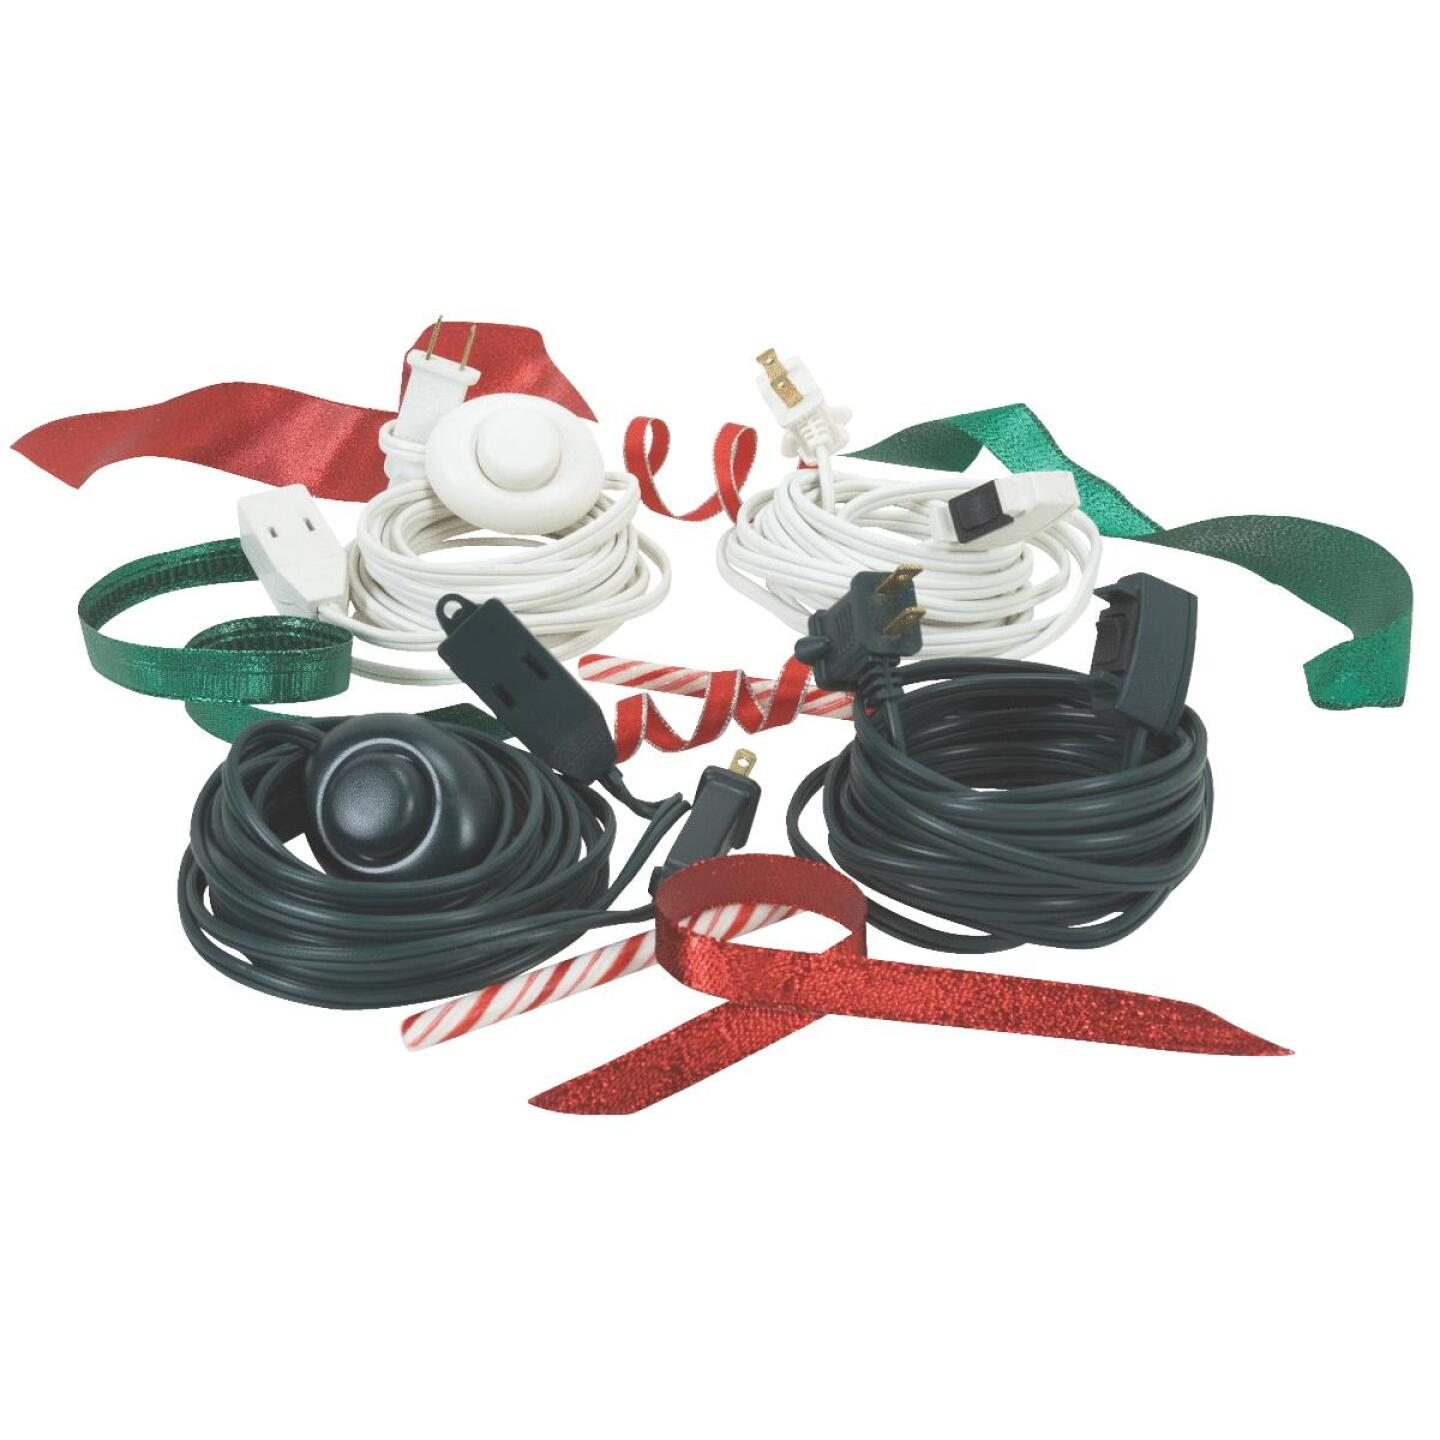 Do it 15 Ft. 18/2 White Extension Cord with Foot Switch Image 2